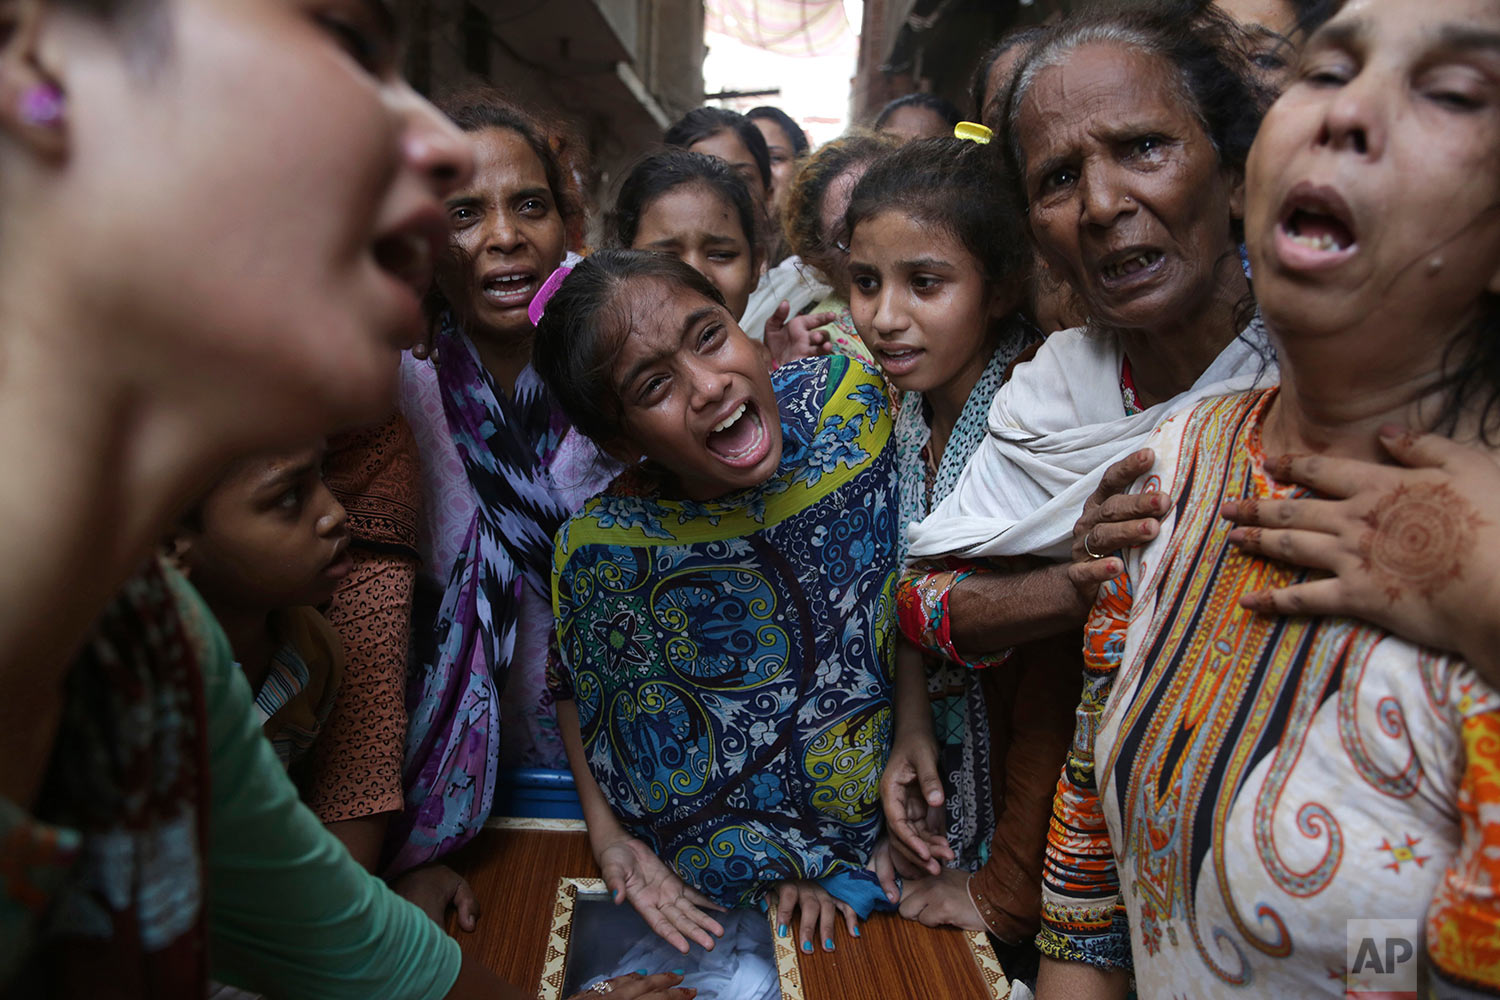 Pakistani relatives of suicide bombing victim mourn during a funeral in Lahore, Pakistan, Tuesday, July 25, 2017. (AP Photo/K.M. Chaudary)